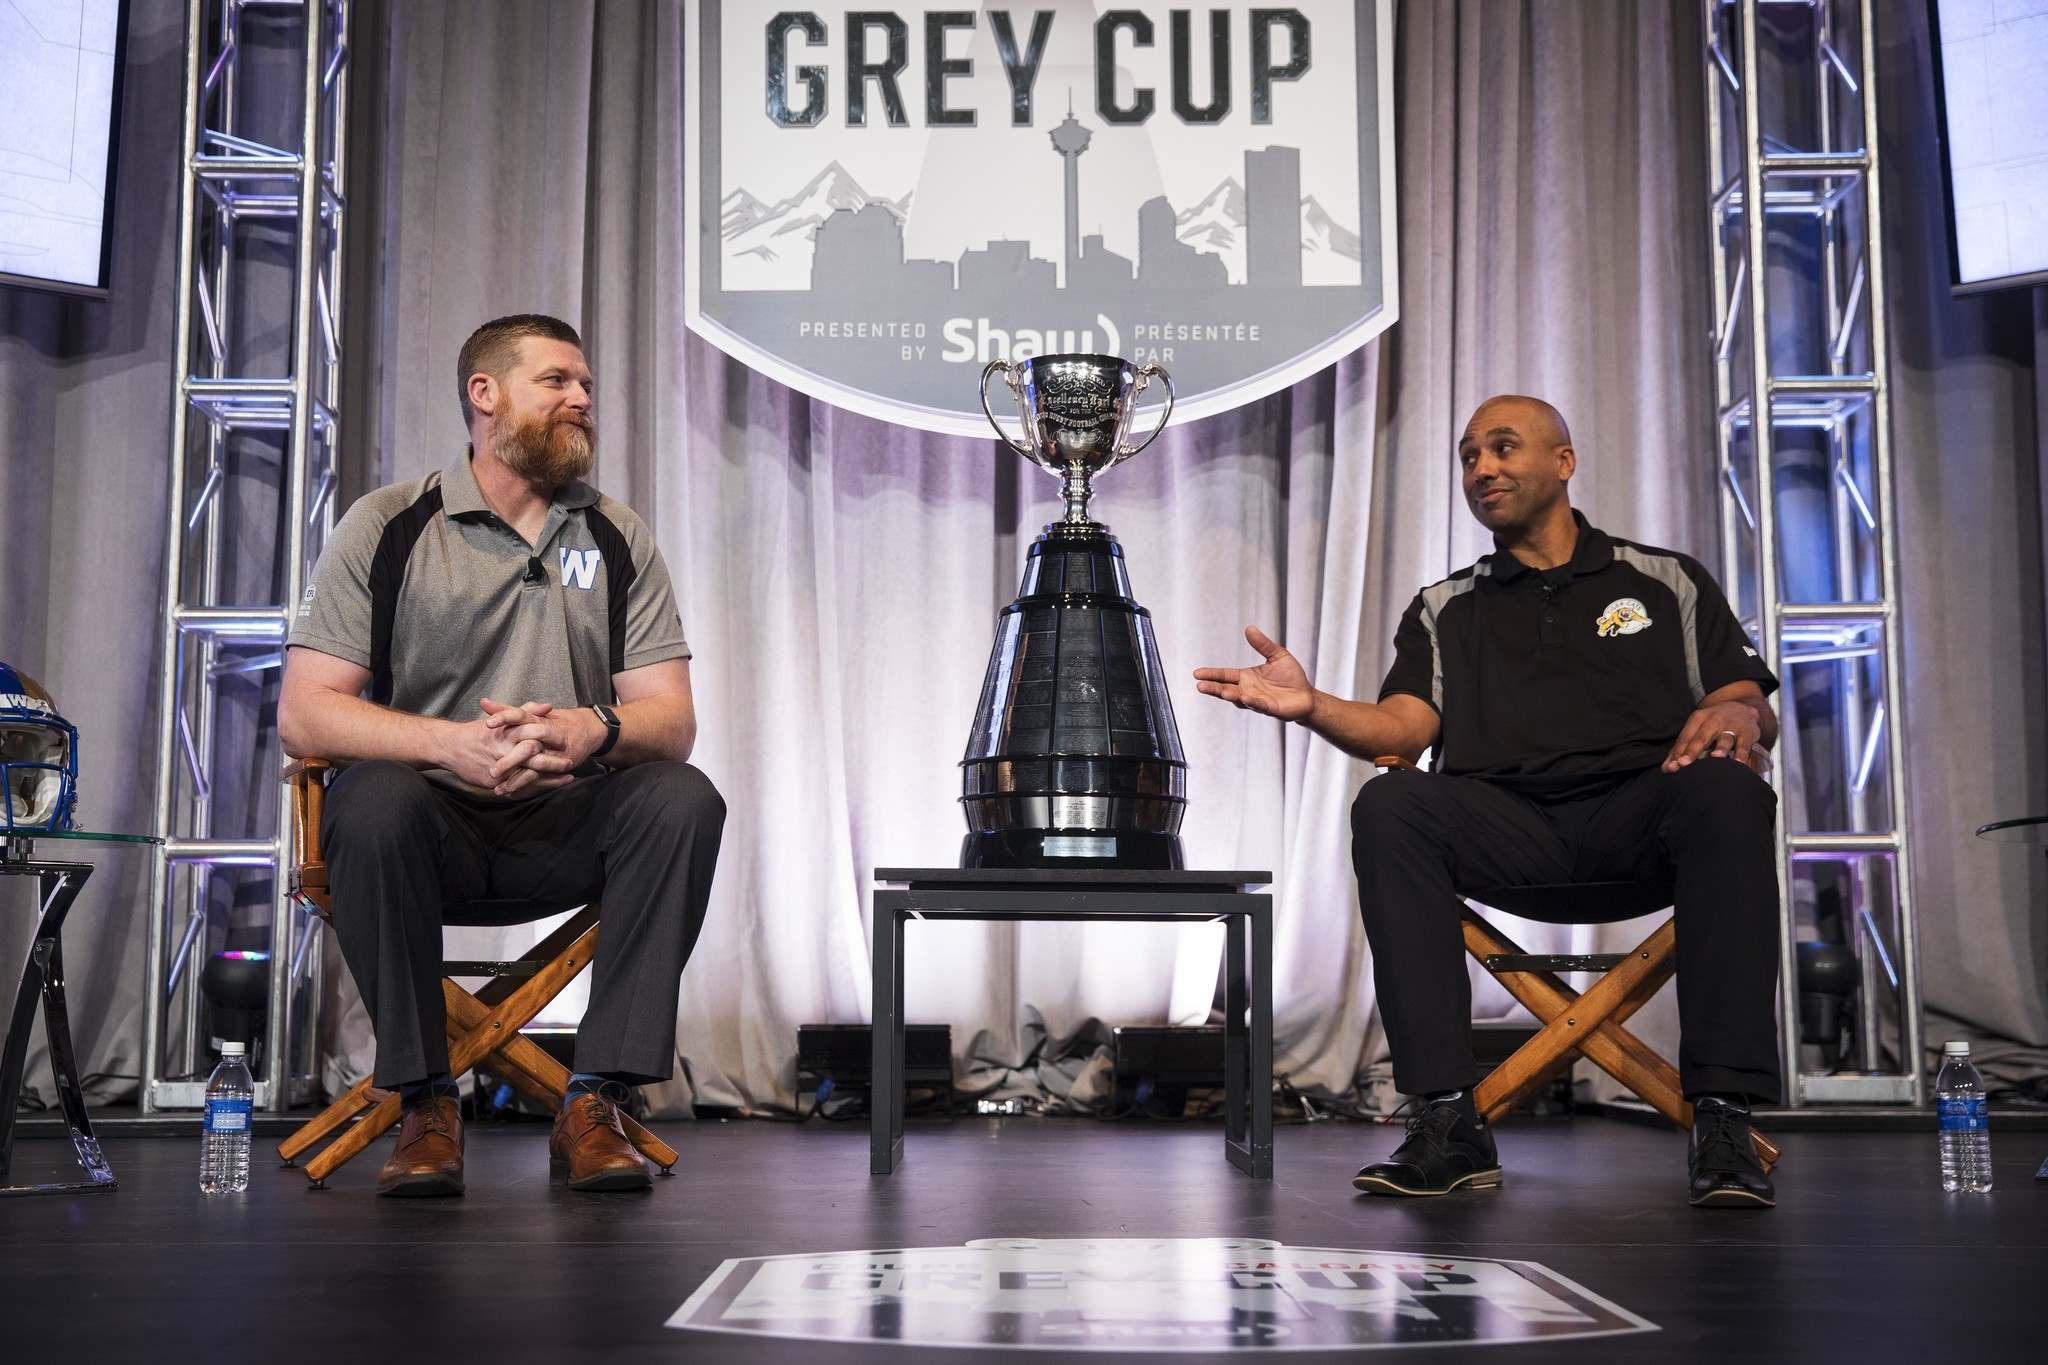 <p>Winnipeg Blue Bombers head coach Mike O'Shea, left, and Hamilton Tiger-Cats head coach Orlondo Steinauer during the coaches news conference at the CFL's Grey Cup week in Calgary, Wednesday.</p>